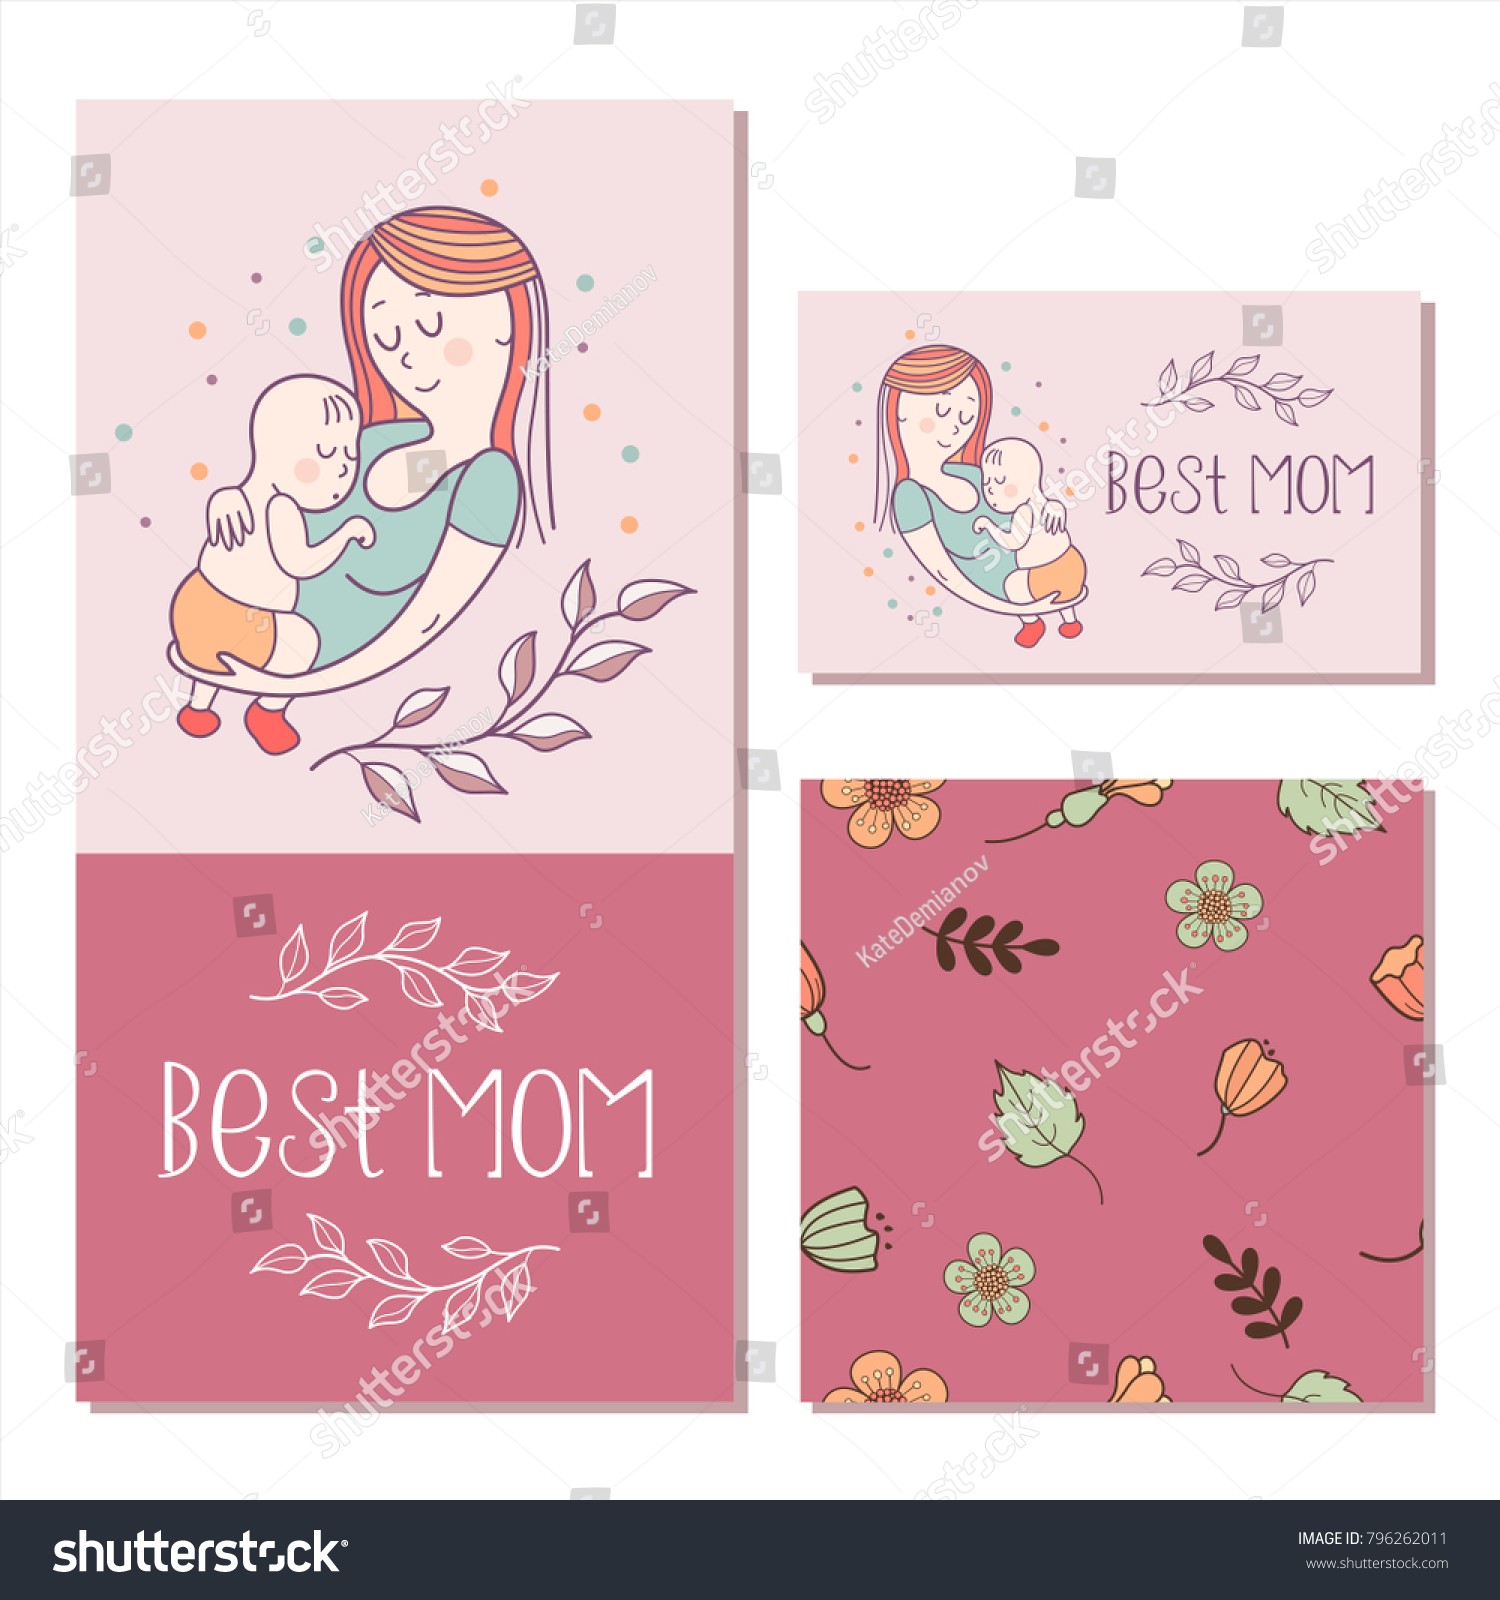 Greeting Card Mothers Day Best Mom Stock Vector (Royalty Free ...